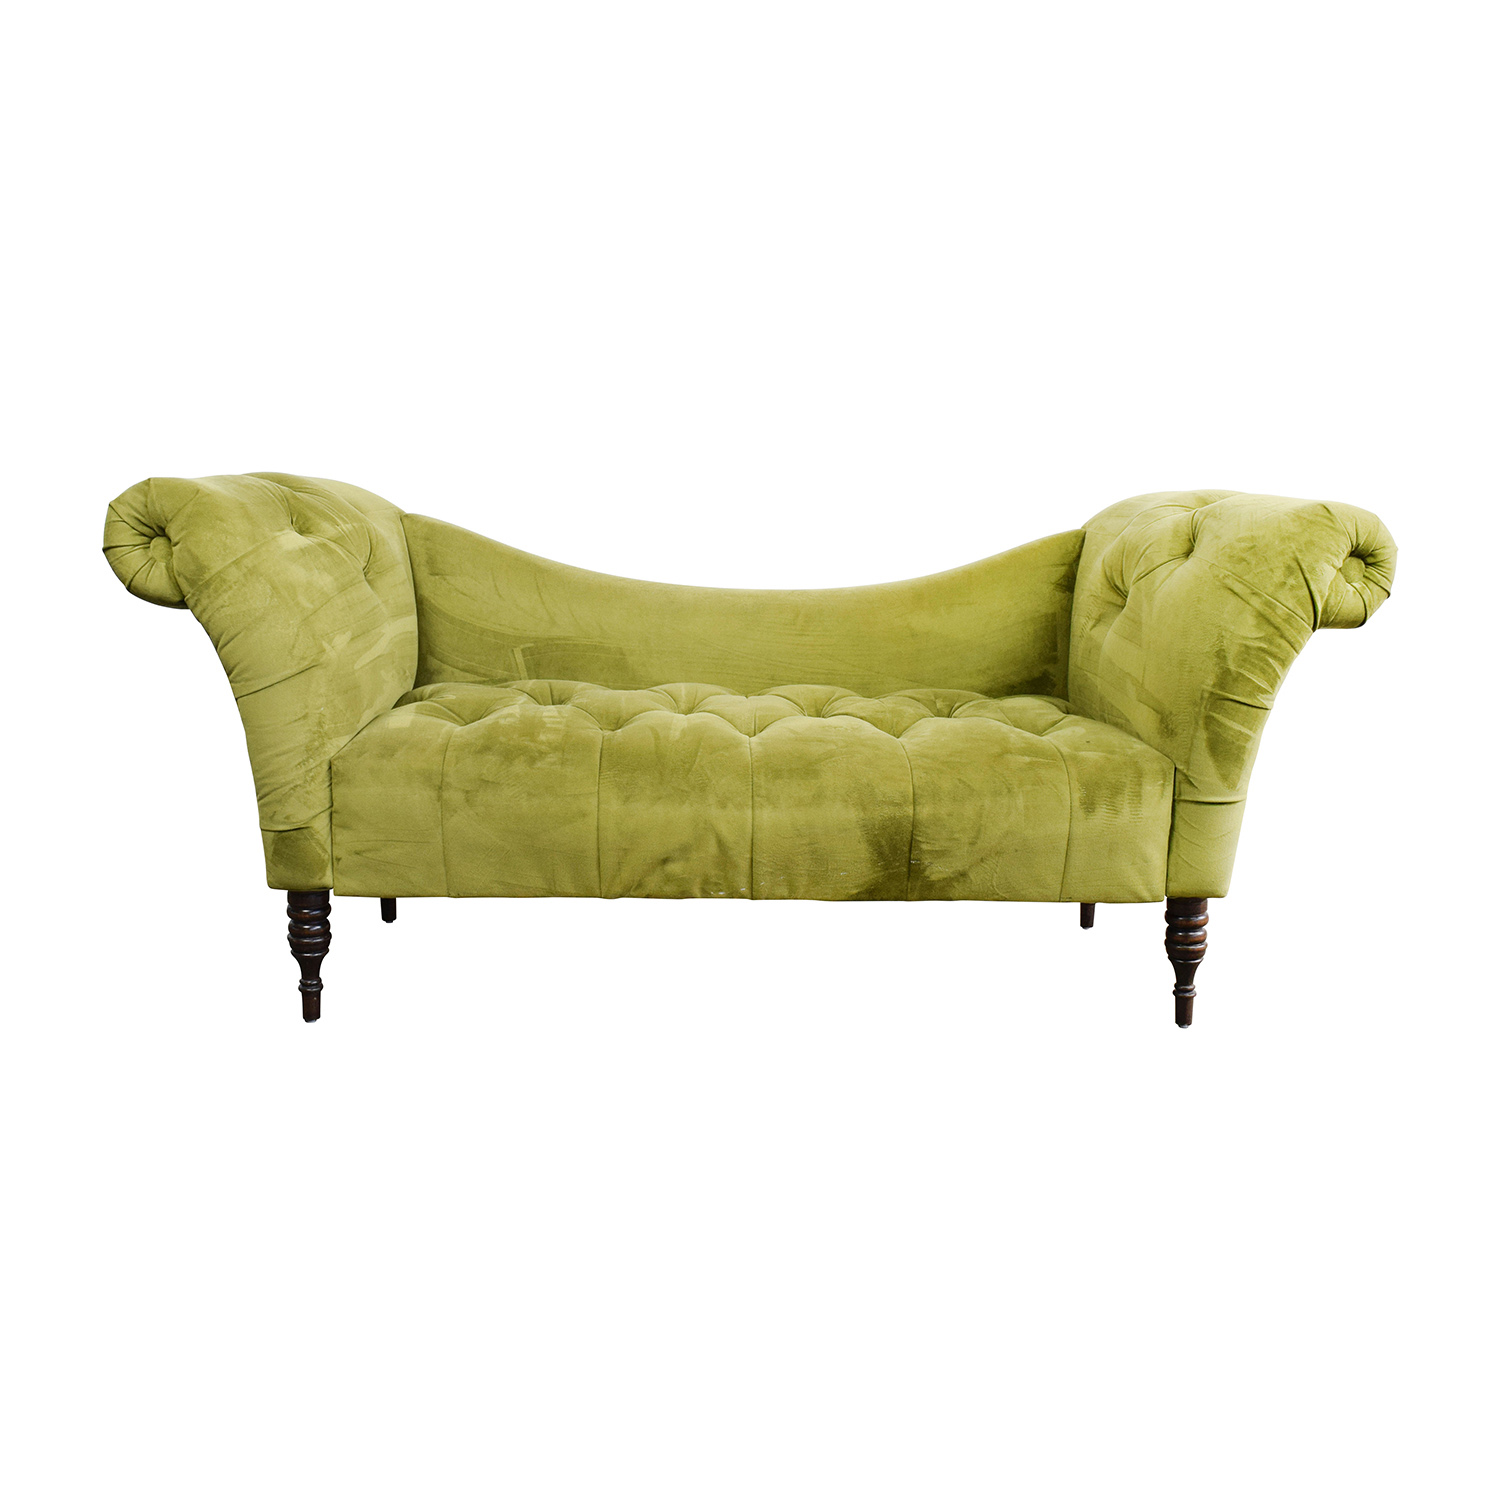 Urban Outers Antoinette Tufted Fainting Sofa Loveseats